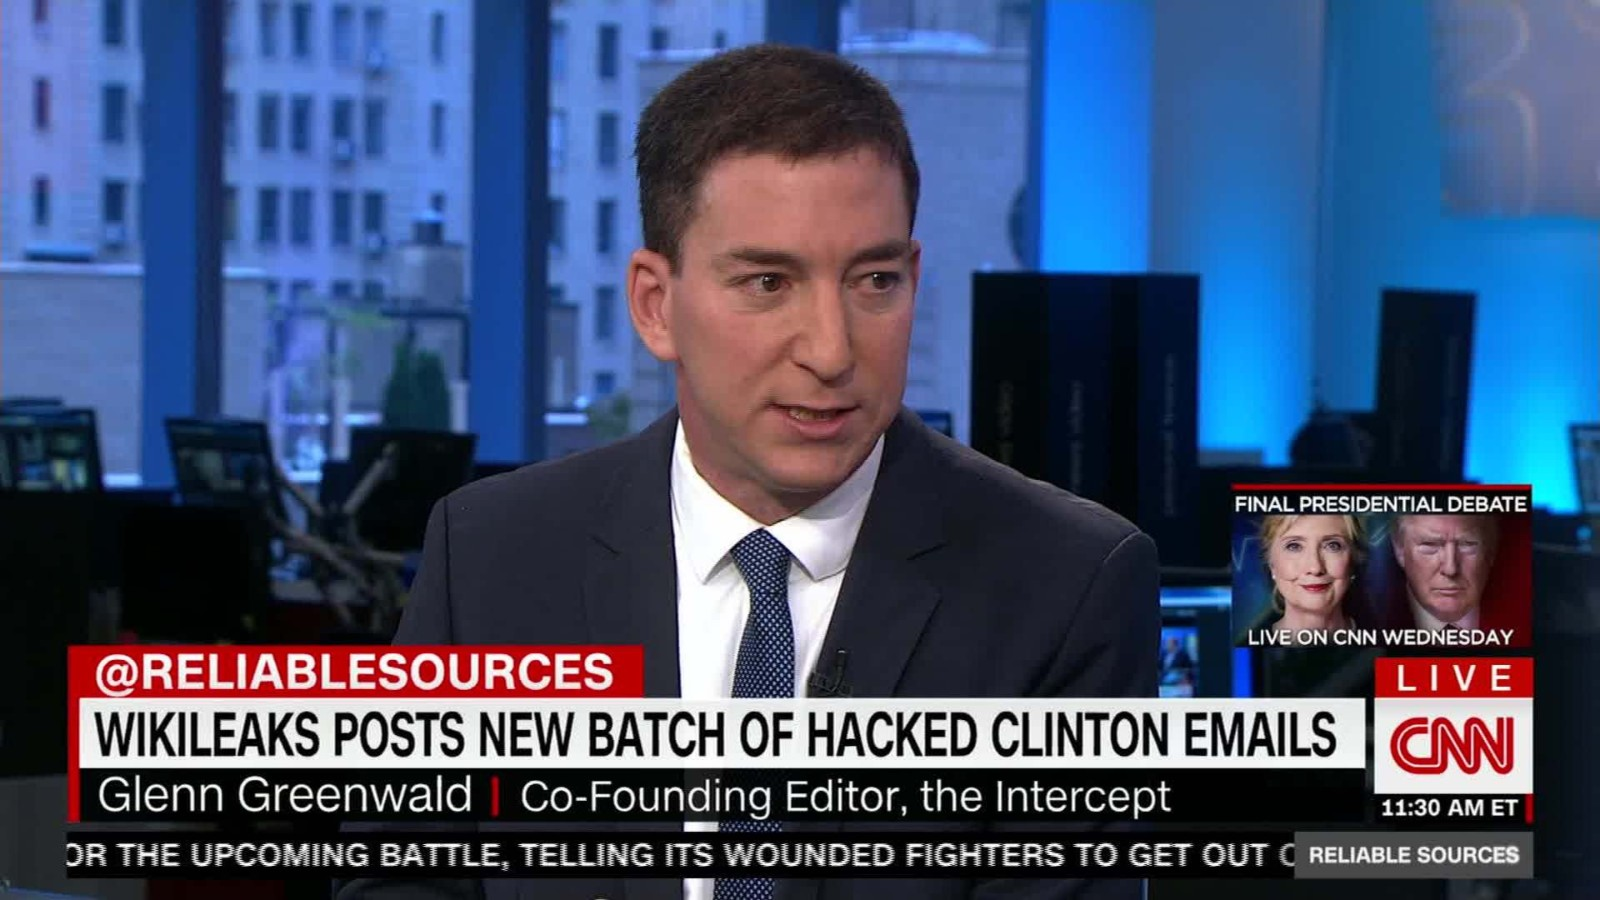 glenn greenwald on wikileaks and what the stolen podesta emails reveal